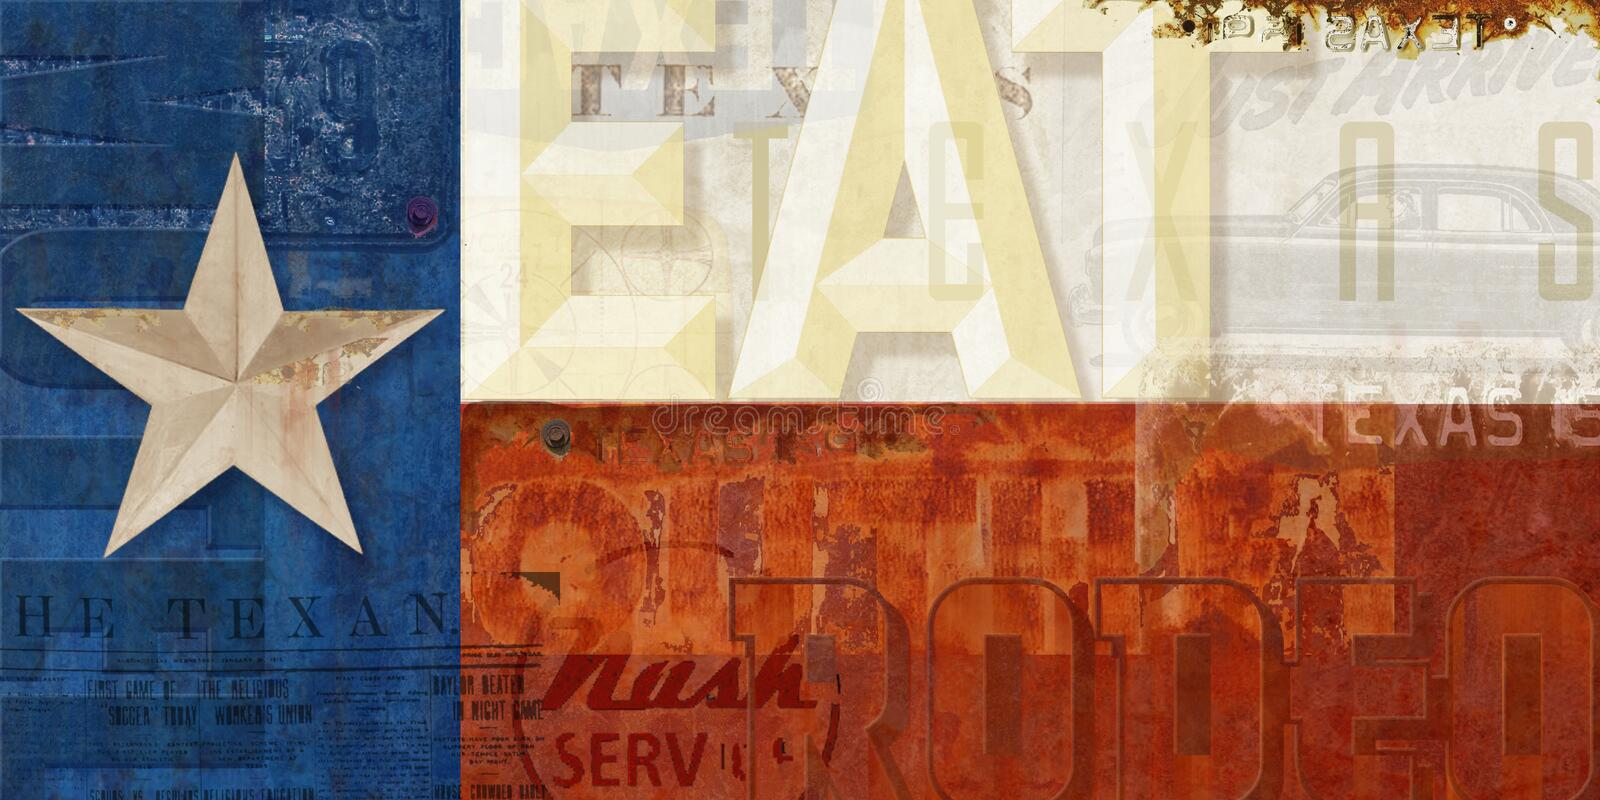 Texas Flag Grunge Eat Rodeo motellservice Route 66 vektor illustrationer